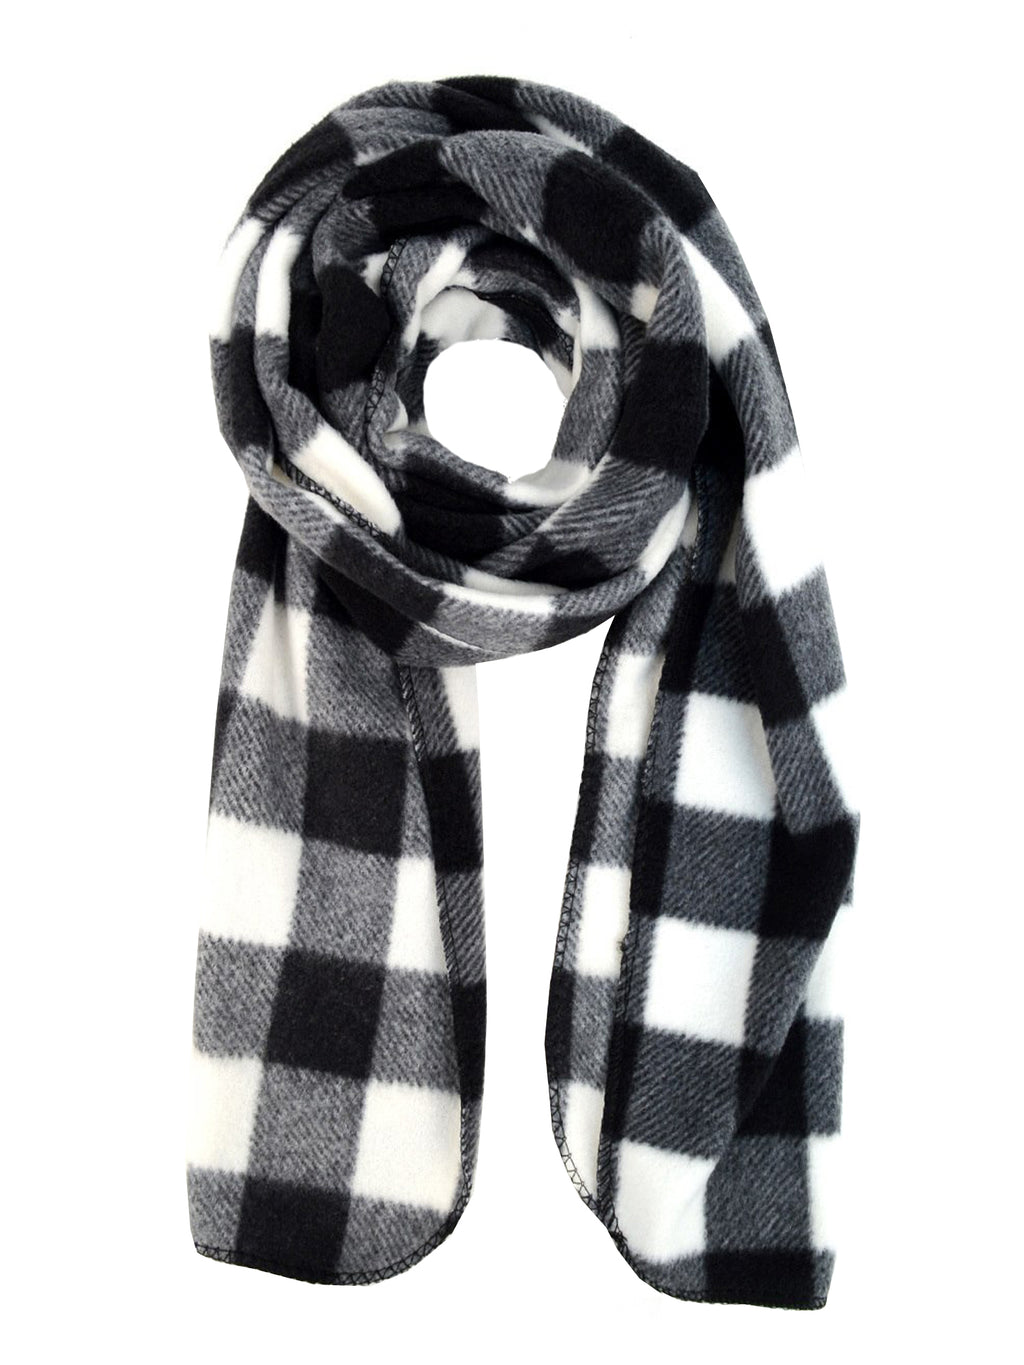 Black & White Plaid Fleece Scarf Glove & Hat Set